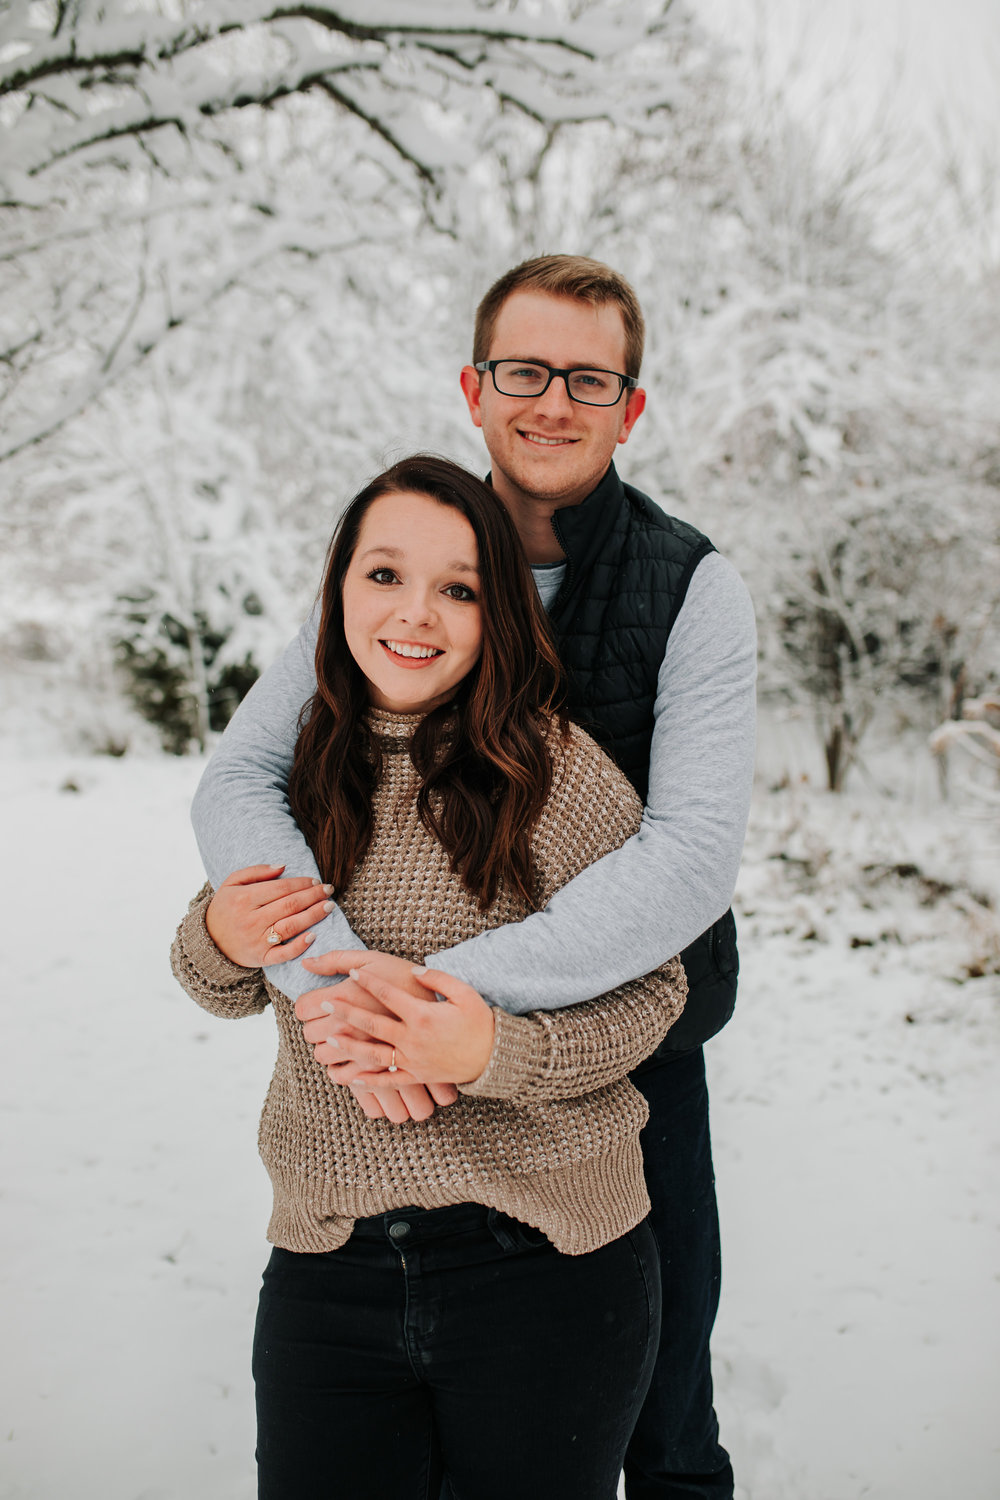 Vanessa & Dan - Engaged - Nathaniel Jensen Photography - Omaha Nebraska Wedding Photographer - Standing Bear Lake - Snowy Engagement Session-18.jpg